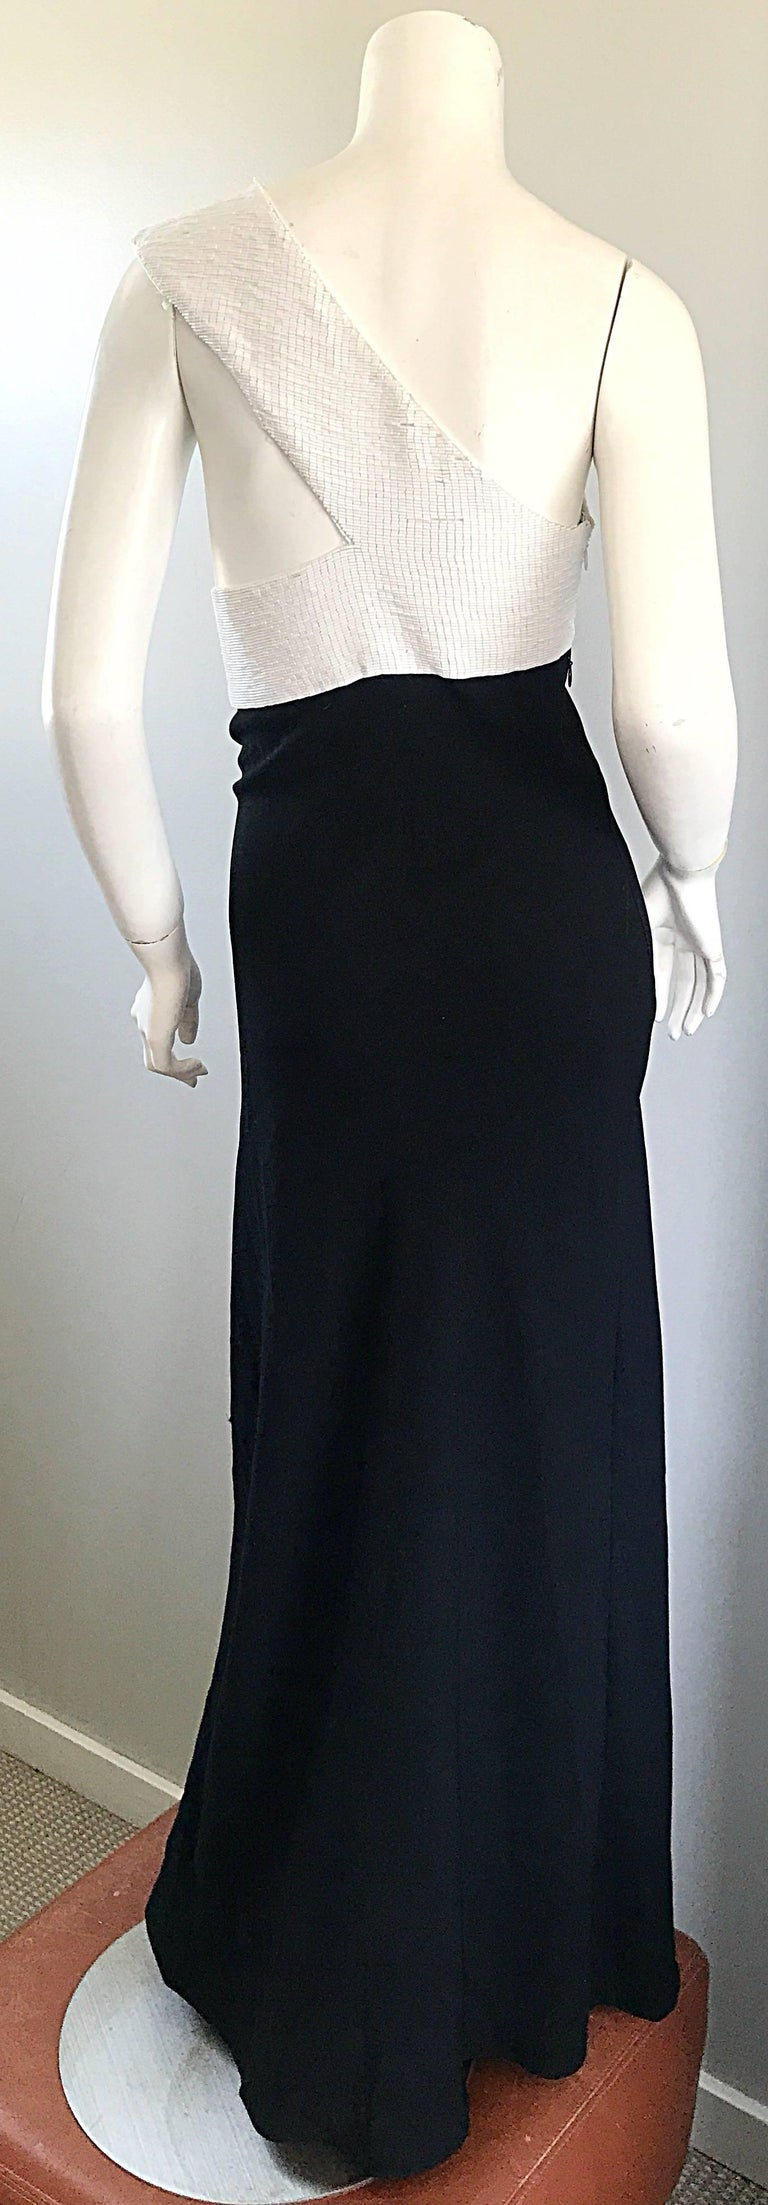 Vintage Jackie Rogers 1990s Black and White One Shoulder Beaded 90s Evening Gown 3